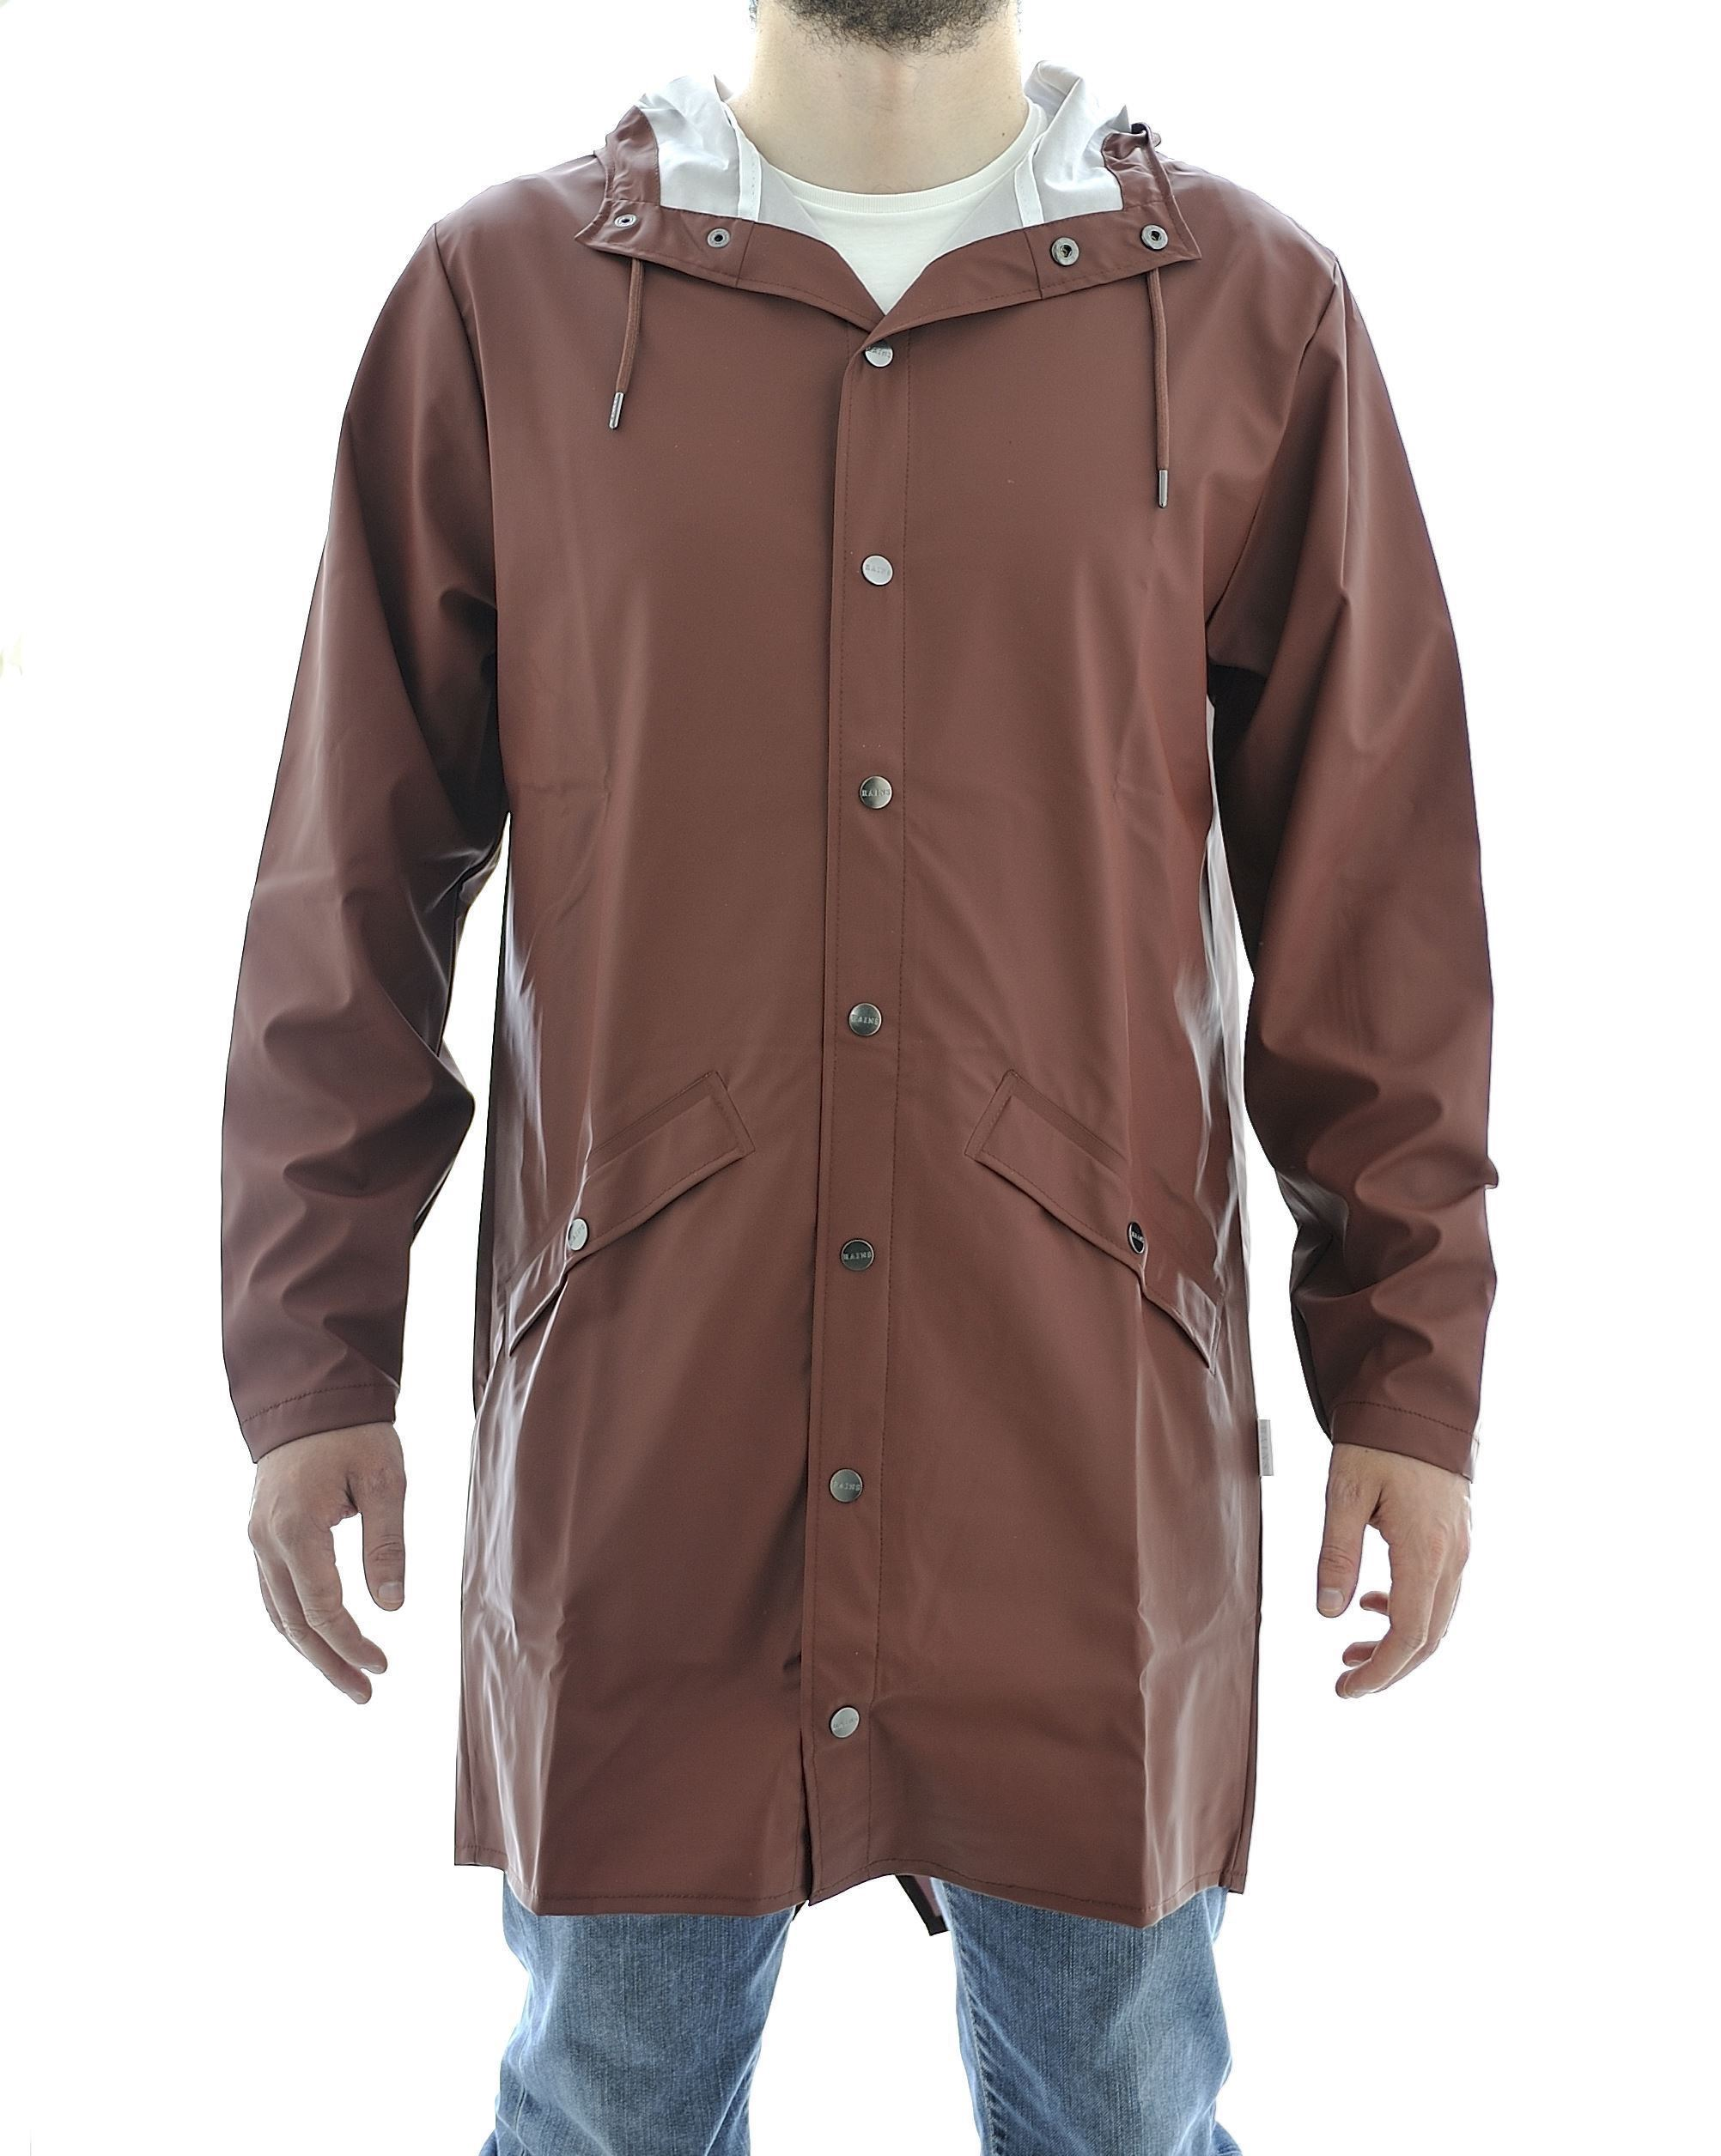 Immagine di Long Jacket antipioggia unisex Marrone